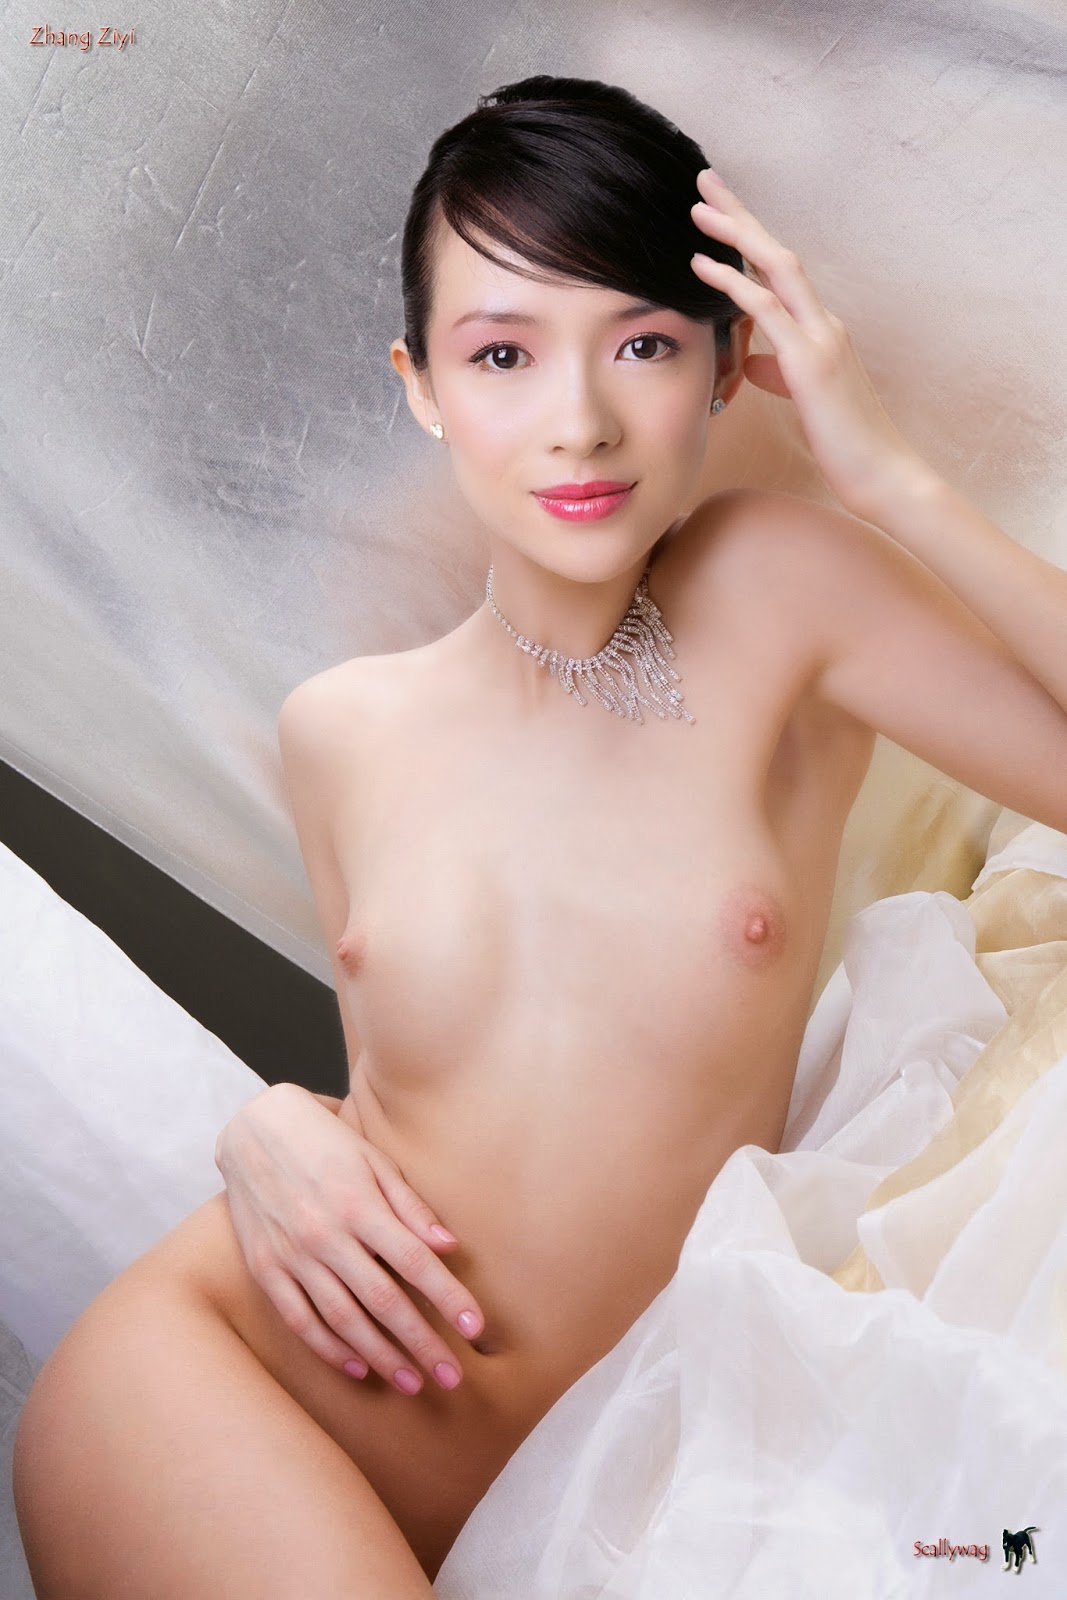 Apologise, but sex nude china photo suggest you